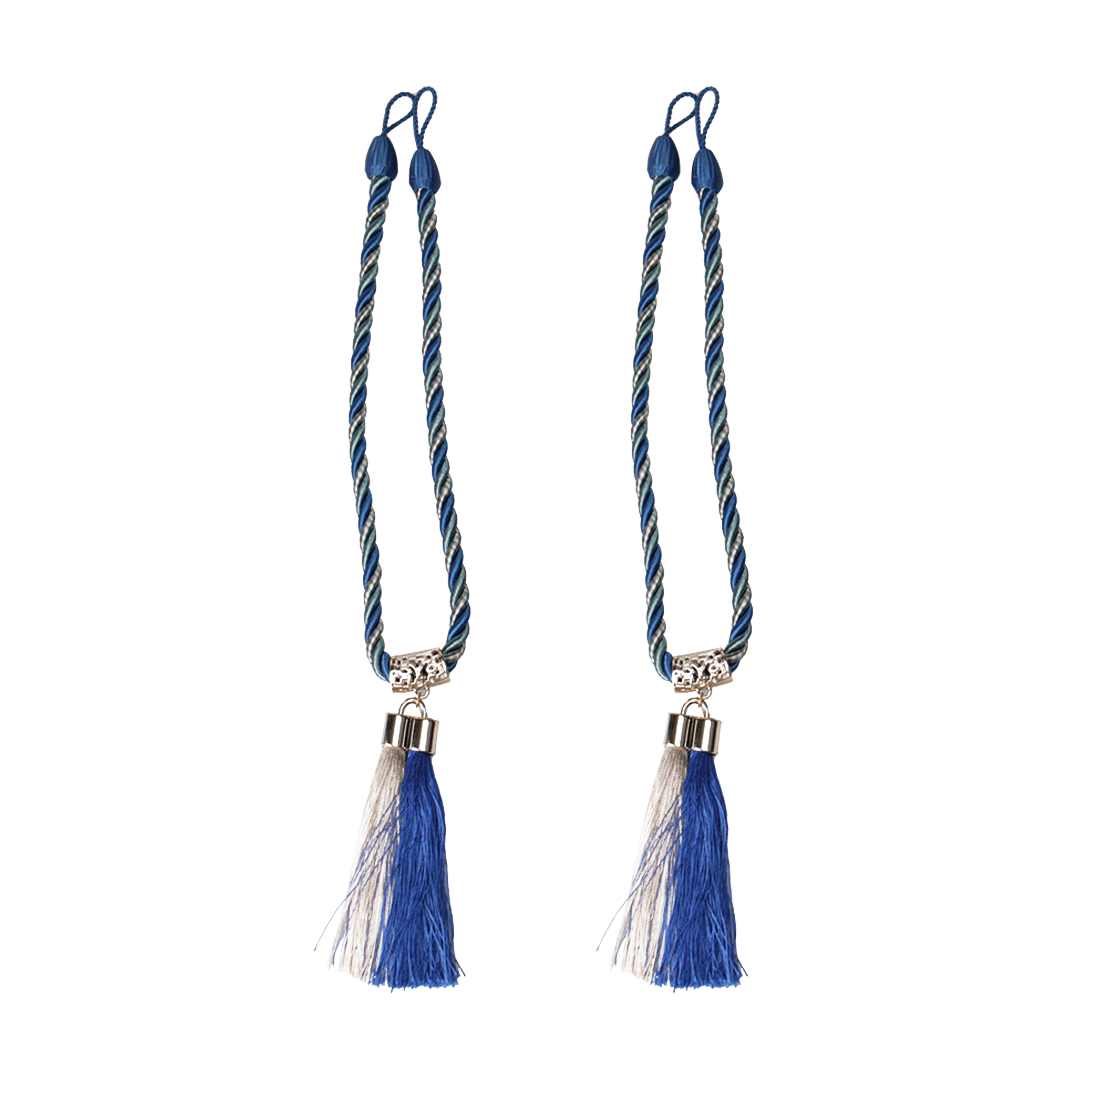 "2pcs Tassel Curtain Tieback 19.7"" Holdback Rope Curtain Holder, Blue"